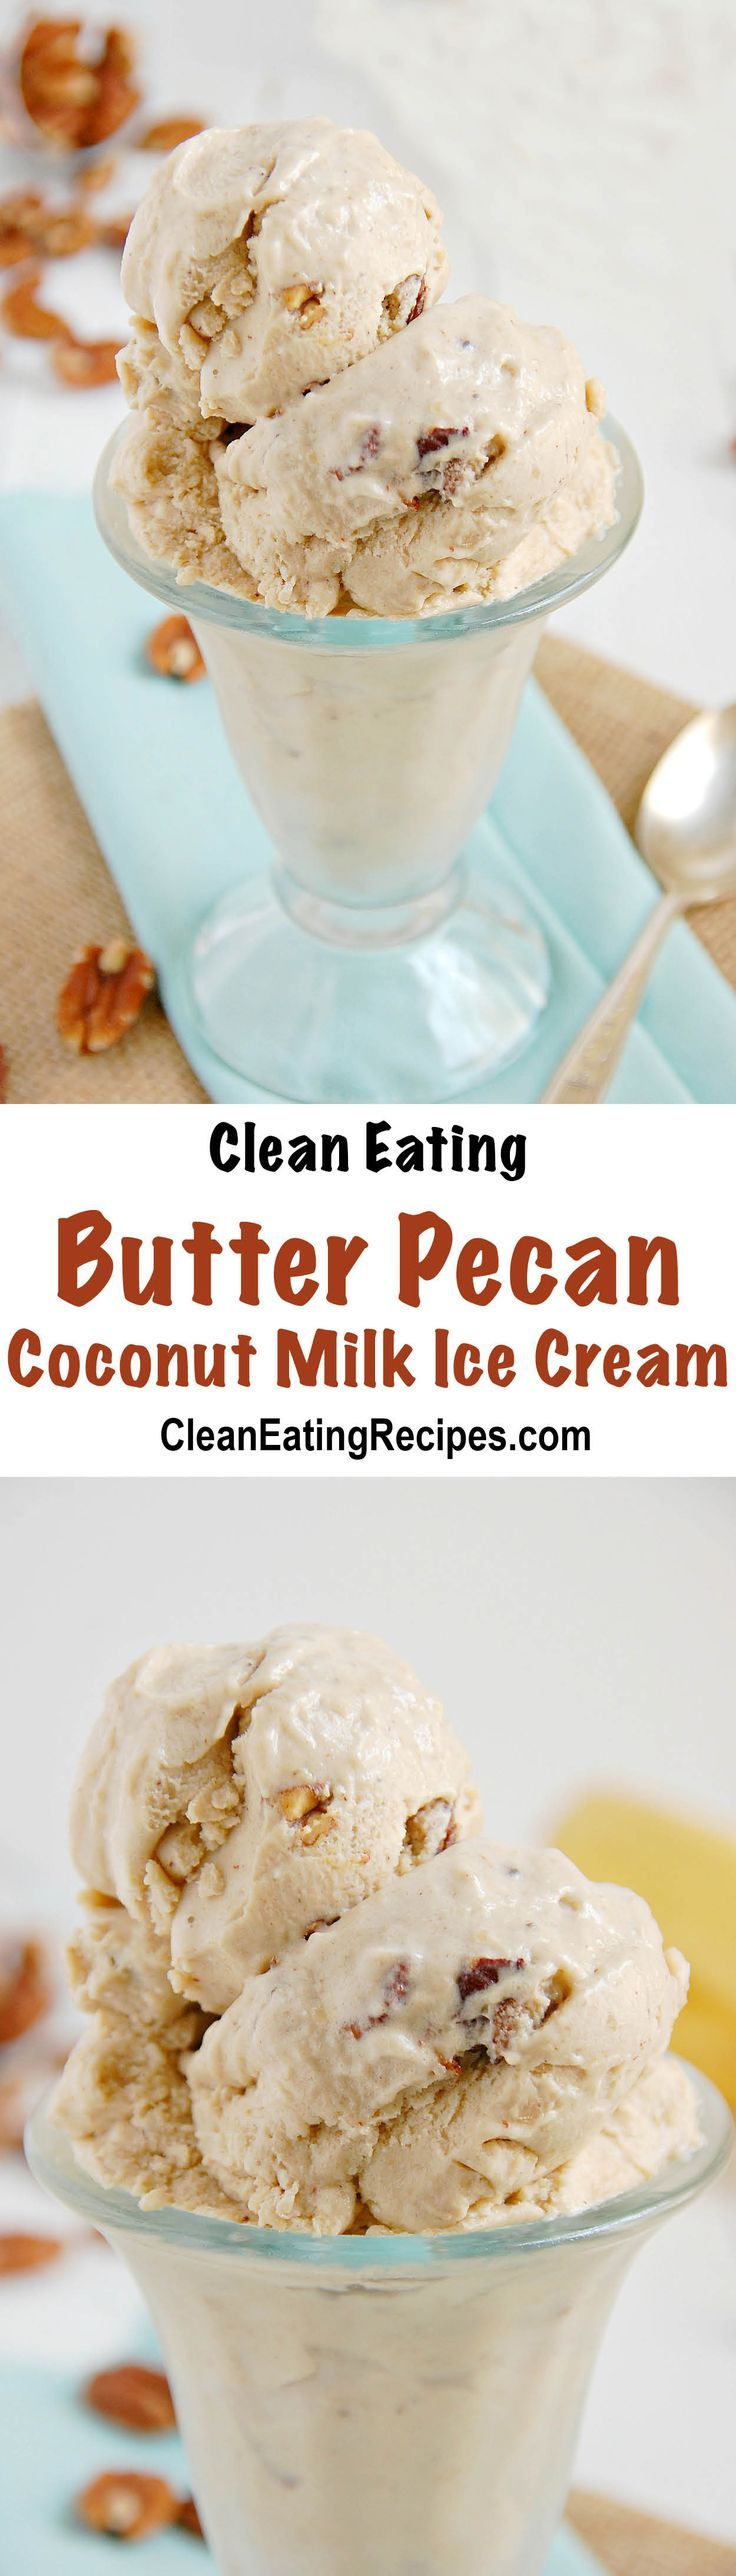 All you need is a blender and frozen bananas, coconut milk, butter, pecans. I can't believe how good this tastes!